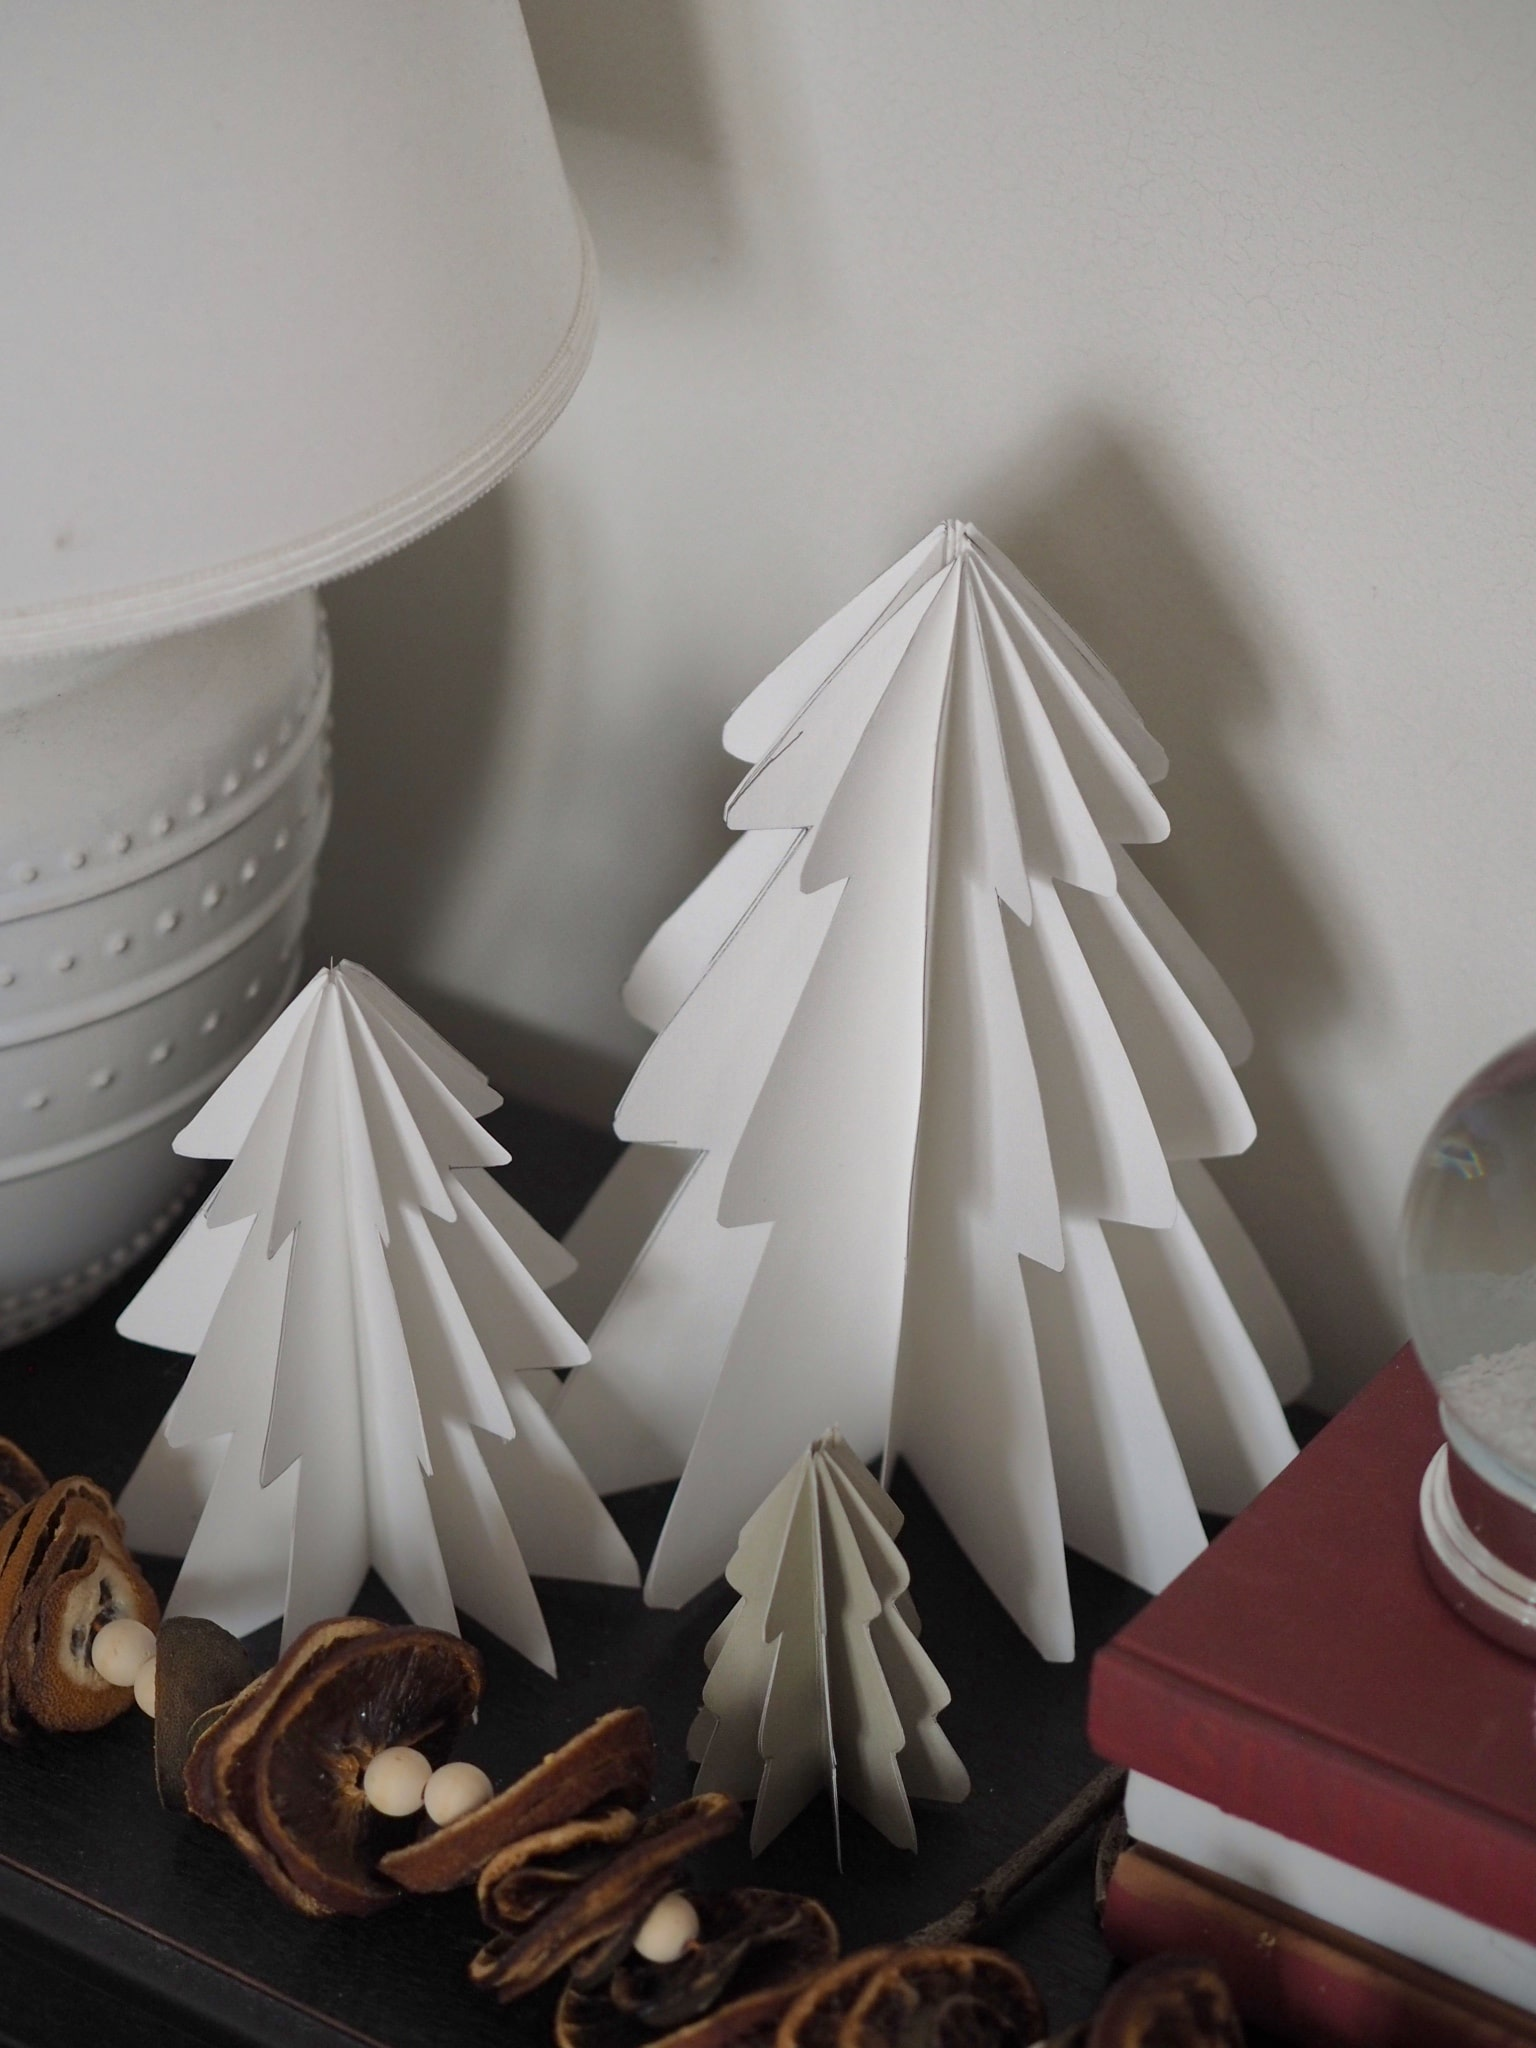 How to make paper Christmas decorations - Budget DIY tutorial on make Christmas tree baubles and tree decorations from card. Craft project inspiration